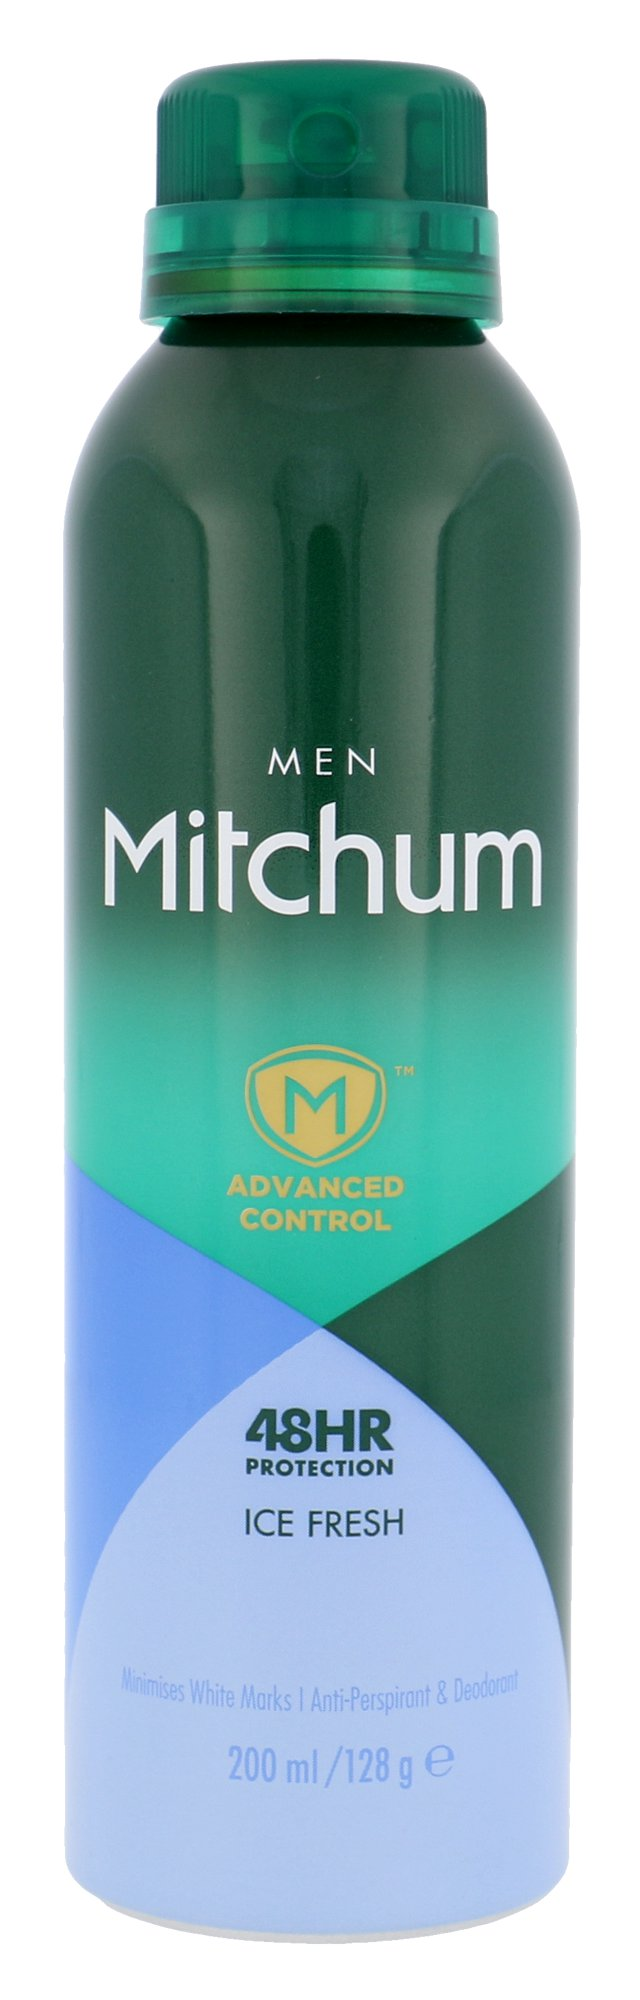 Mitchum Advanced Control Ice Fresh, dezodor 200ml, 48HR